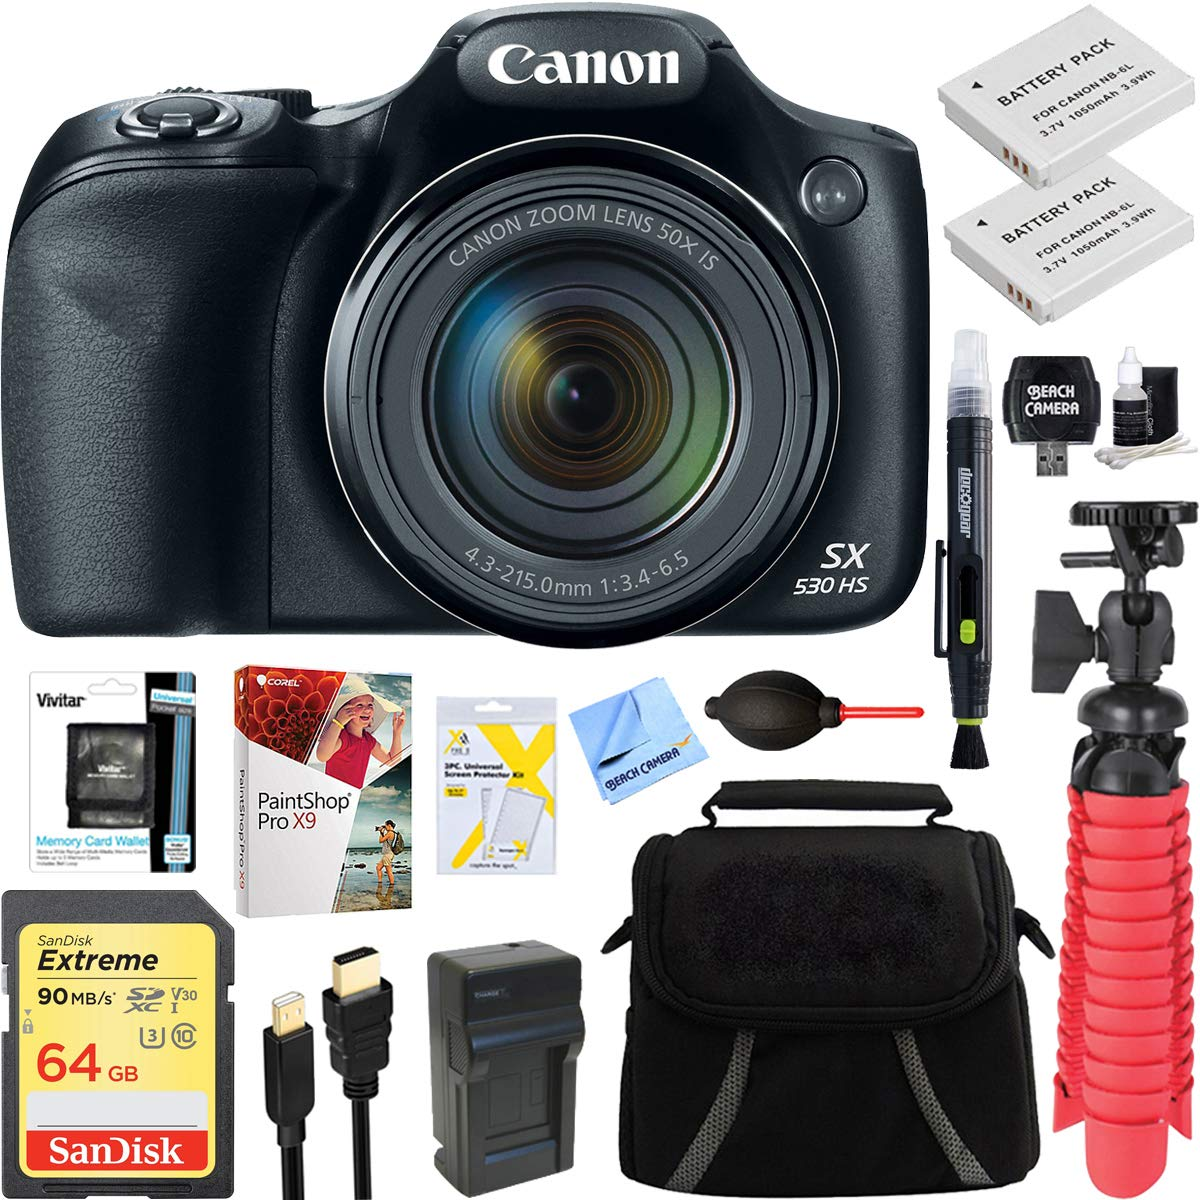 Canon PowerShot SX530 HS 16.0 MP 50x Optical Zoom Digital Camera (Black) + Two-Pack NB-6L Spare Batteries + Accessory Bundle by Canon